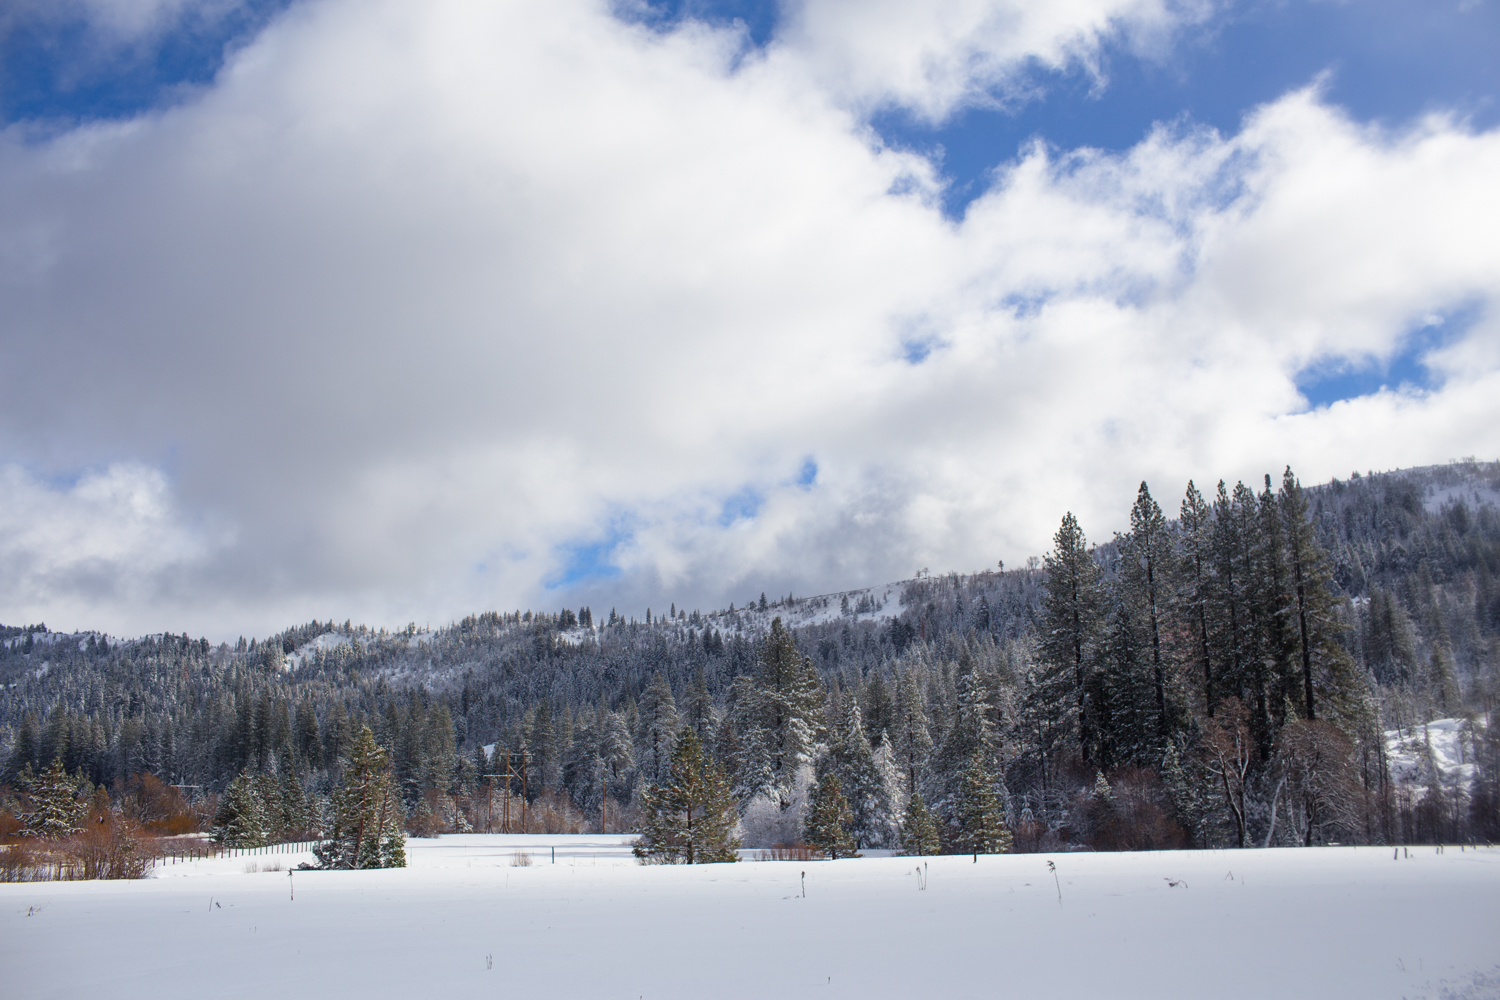 Bear valley tahoe national forest snowshoing